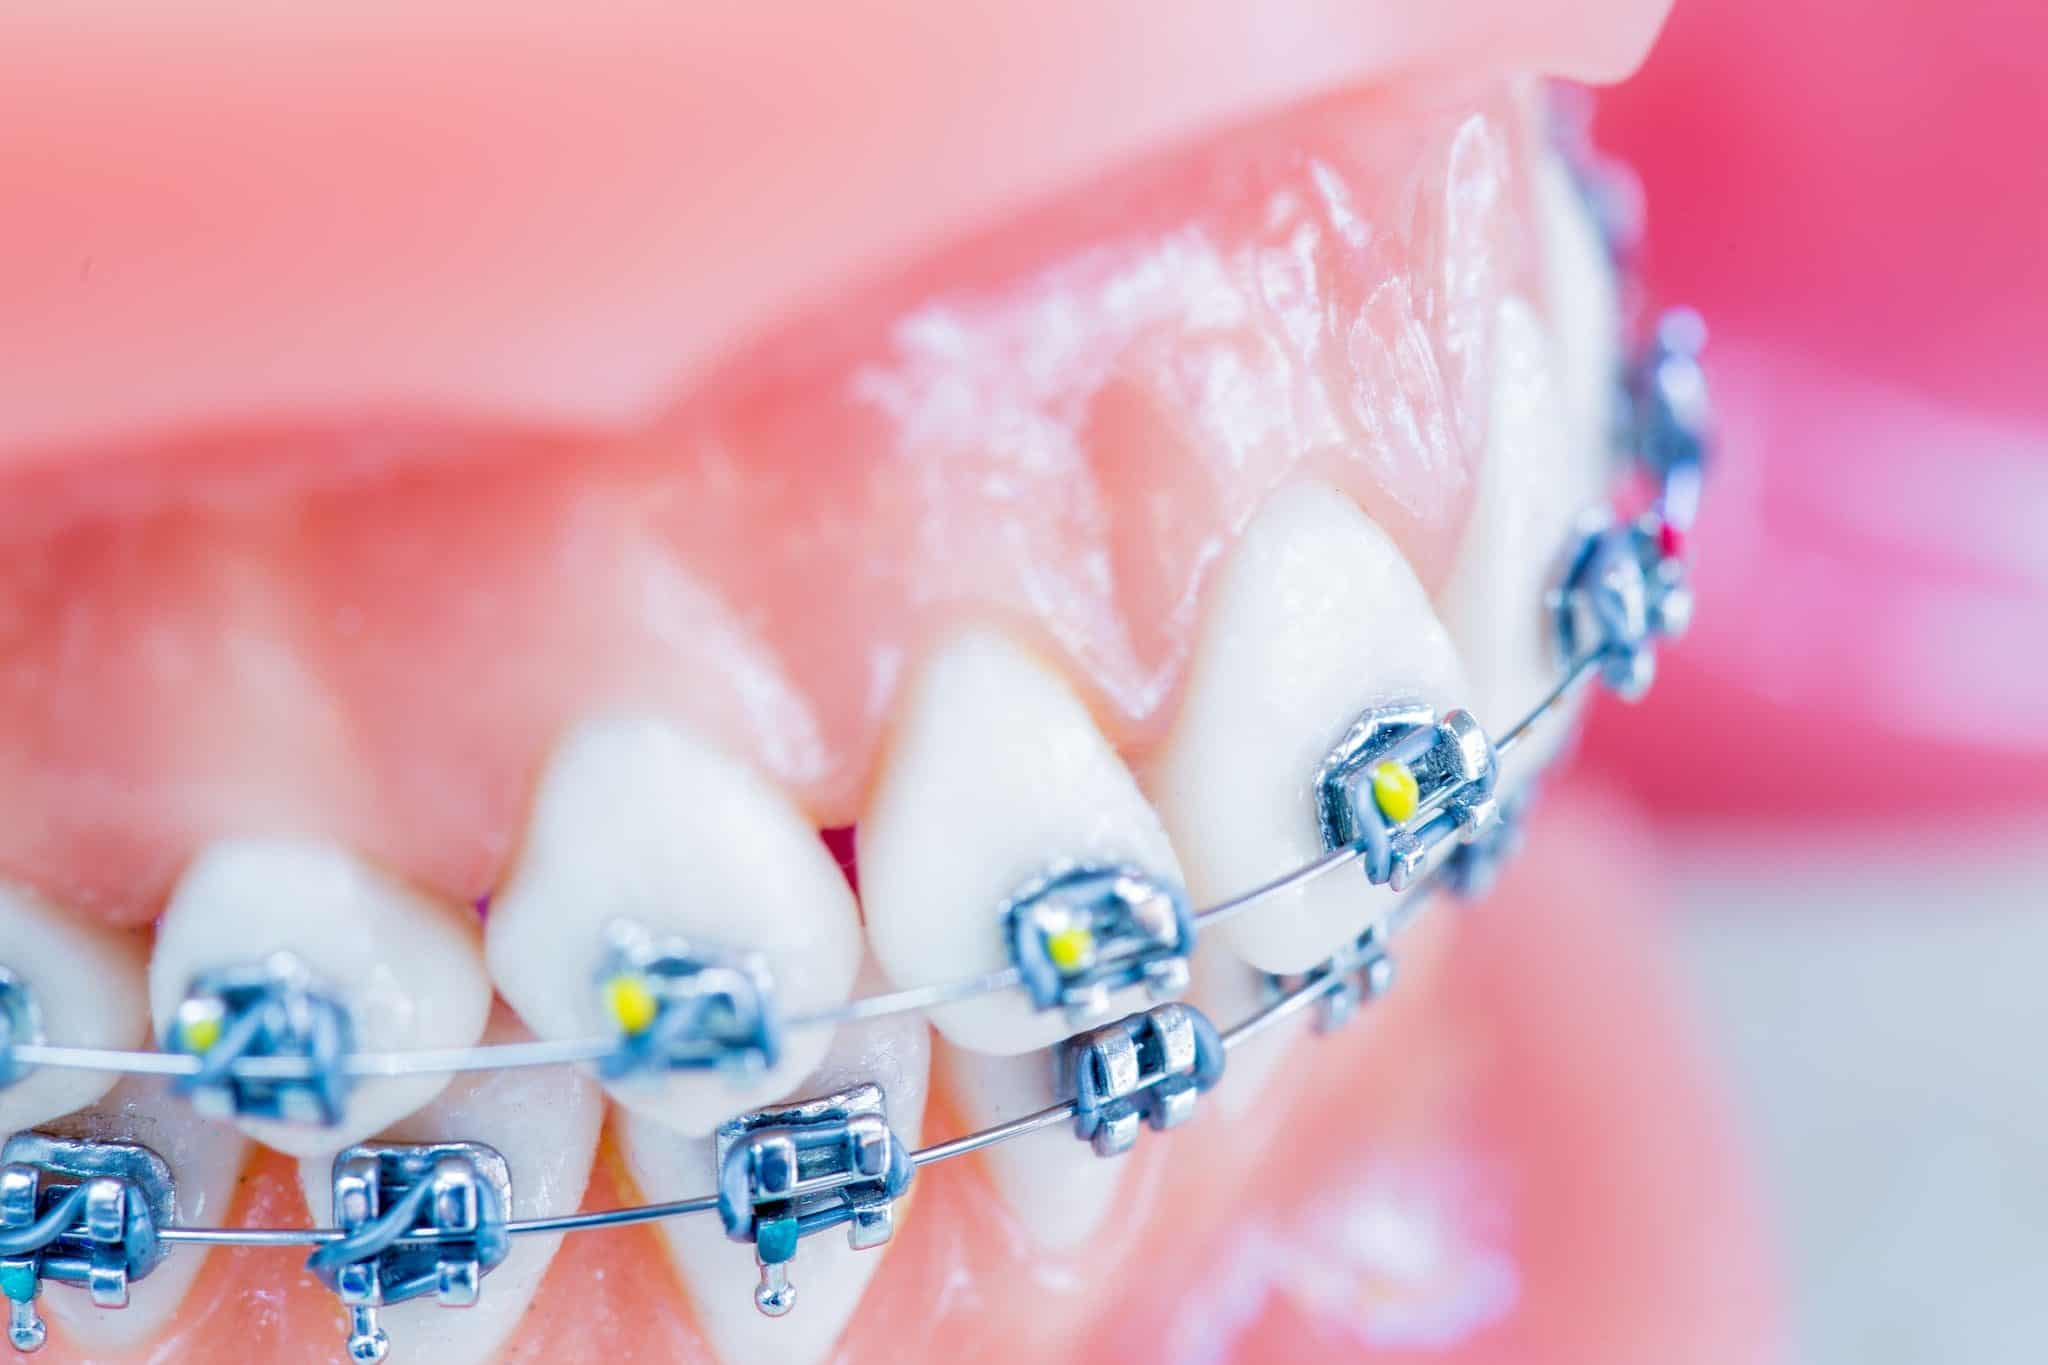 Ortho Essentials Appel Orthodontics 22 2048x1365 - Customized Braces & Orthodontic Treatment For Adults and Children